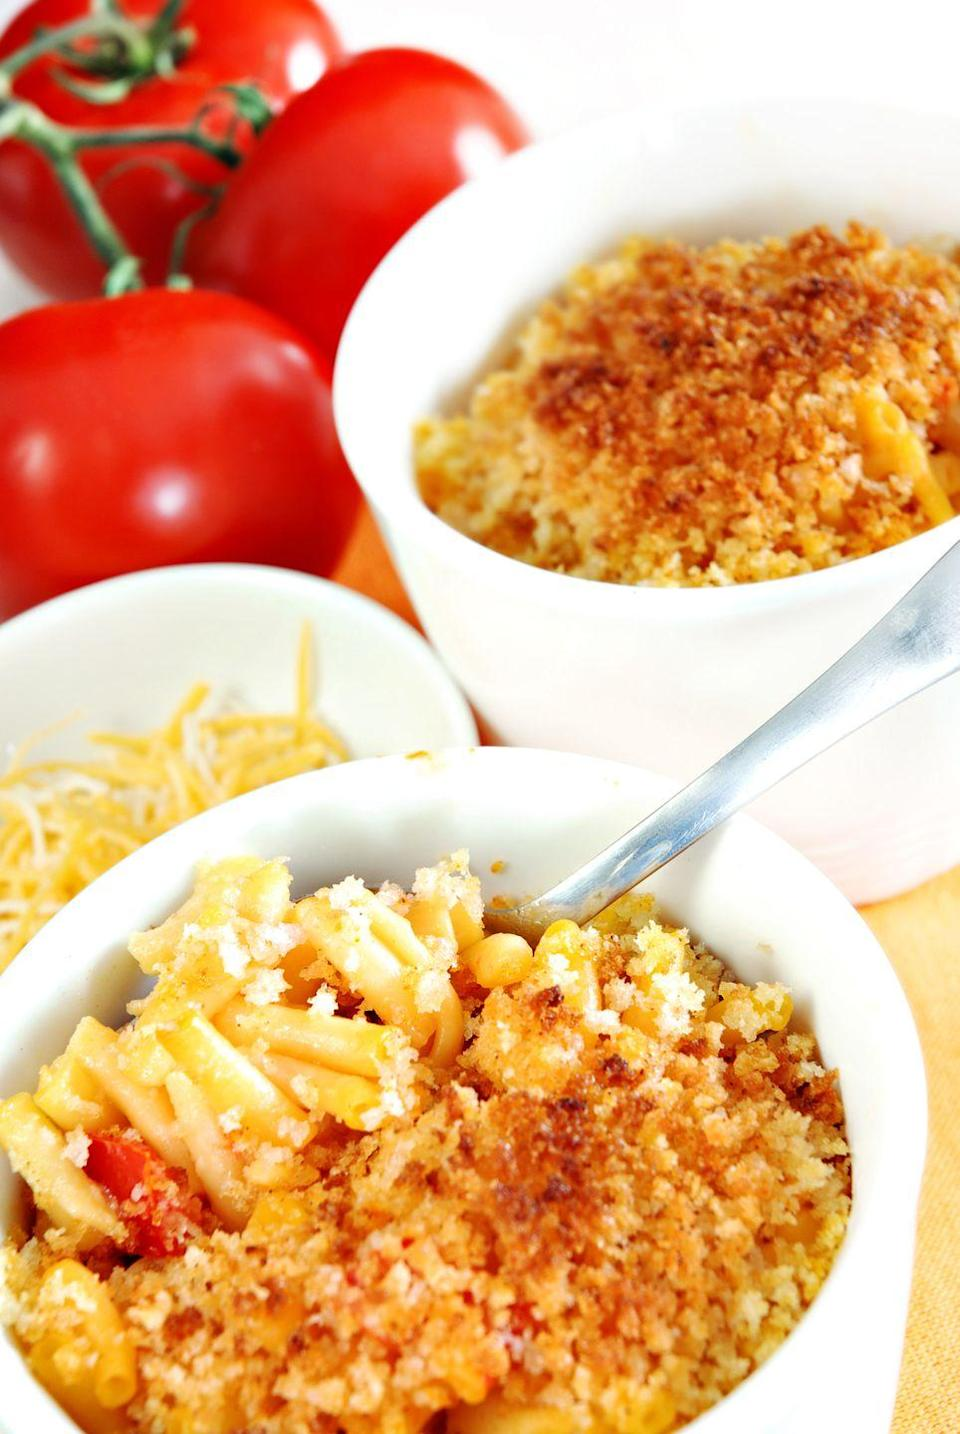 """<p><a href=""""https://www.delish.com/uk/cooking/recipes/a28830973/3-cheese-mac-recipe/"""" rel=""""nofollow noopener"""" target=""""_blank"""" data-ylk=""""slk:Mac 'n' cheese"""" class=""""link rapid-noclick-resp"""">Mac 'n' cheese</a>, of course!</p><p>More mac 'n' cheese recipes:</p><p><a href=""""https://www.delish.com/uk/cooking/recipes/a30992624/mac-and-cheese-pizza-bites-recipe/"""" rel=""""nofollow noopener"""" target=""""_blank"""" data-ylk=""""slk:Mac 'n' cheese pizza bites"""" class=""""link rapid-noclick-resp"""">Mac 'n' cheese pizza bites</a><br><a href=""""https://www.delish.com/uk/cooking/recipes/a30208327/reuben-mac-and-cheese-recipe/"""" rel=""""nofollow noopener"""" target=""""_blank"""" data-ylk=""""slk:Reuben mac 'n' cheese"""" class=""""link rapid-noclick-resp"""">Reuben mac 'n' cheese</a><a href=""""https://www.delish.com/uk/cooking/recipes/a30132099/keto-mac-and-cheese-recipe/"""" rel=""""nofollow noopener"""" target=""""_blank"""" data-ylk=""""slk:Keto mac 'n' cheese"""" class=""""link rapid-noclick-resp""""><br>Keto mac 'n' cheese</a><a href=""""https://www.delish.com/uk/cooking/recipes/a30992931/vegan-mac-and-cheese-recipe/"""" rel=""""nofollow noopener"""" target=""""_blank"""" data-ylk=""""slk:Best-ever vegan mac 'n' cheese"""" class=""""link rapid-noclick-resp""""><br>Best-ever vegan mac 'n' cheese</a><br><a href=""""https://www.delish.com/uk/cooking/recipes/a30992847/bacon-mac-and-cheese-recipe/"""" rel=""""nofollow noopener"""" target=""""_blank"""" data-ylk=""""slk:Fancy bacon mac 'n' cheese"""" class=""""link rapid-noclick-resp"""">Fancy bacon mac 'n' cheese</a><a href=""""https://www.delish.com/uk/cooking/a30724851/mac-and-cheese-lasagna-recipe/"""" rel=""""nofollow noopener"""" target=""""_blank"""" data-ylk=""""slk:Mac 'n' cheese lasagne"""" class=""""link rapid-noclick-resp""""><br>Mac 'n' cheese lasagne</a><a href=""""https://www.delish.com/uk/cooking/recipes/a28924211/italian-mac-n-cheese-recipe/"""" rel=""""nofollow noopener"""" target=""""_blank"""" data-ylk=""""slk:Italian mac 'n' cheese"""" class=""""link rapid-noclick-resp""""><br>Italian mac 'n' cheese</a><br></p>"""